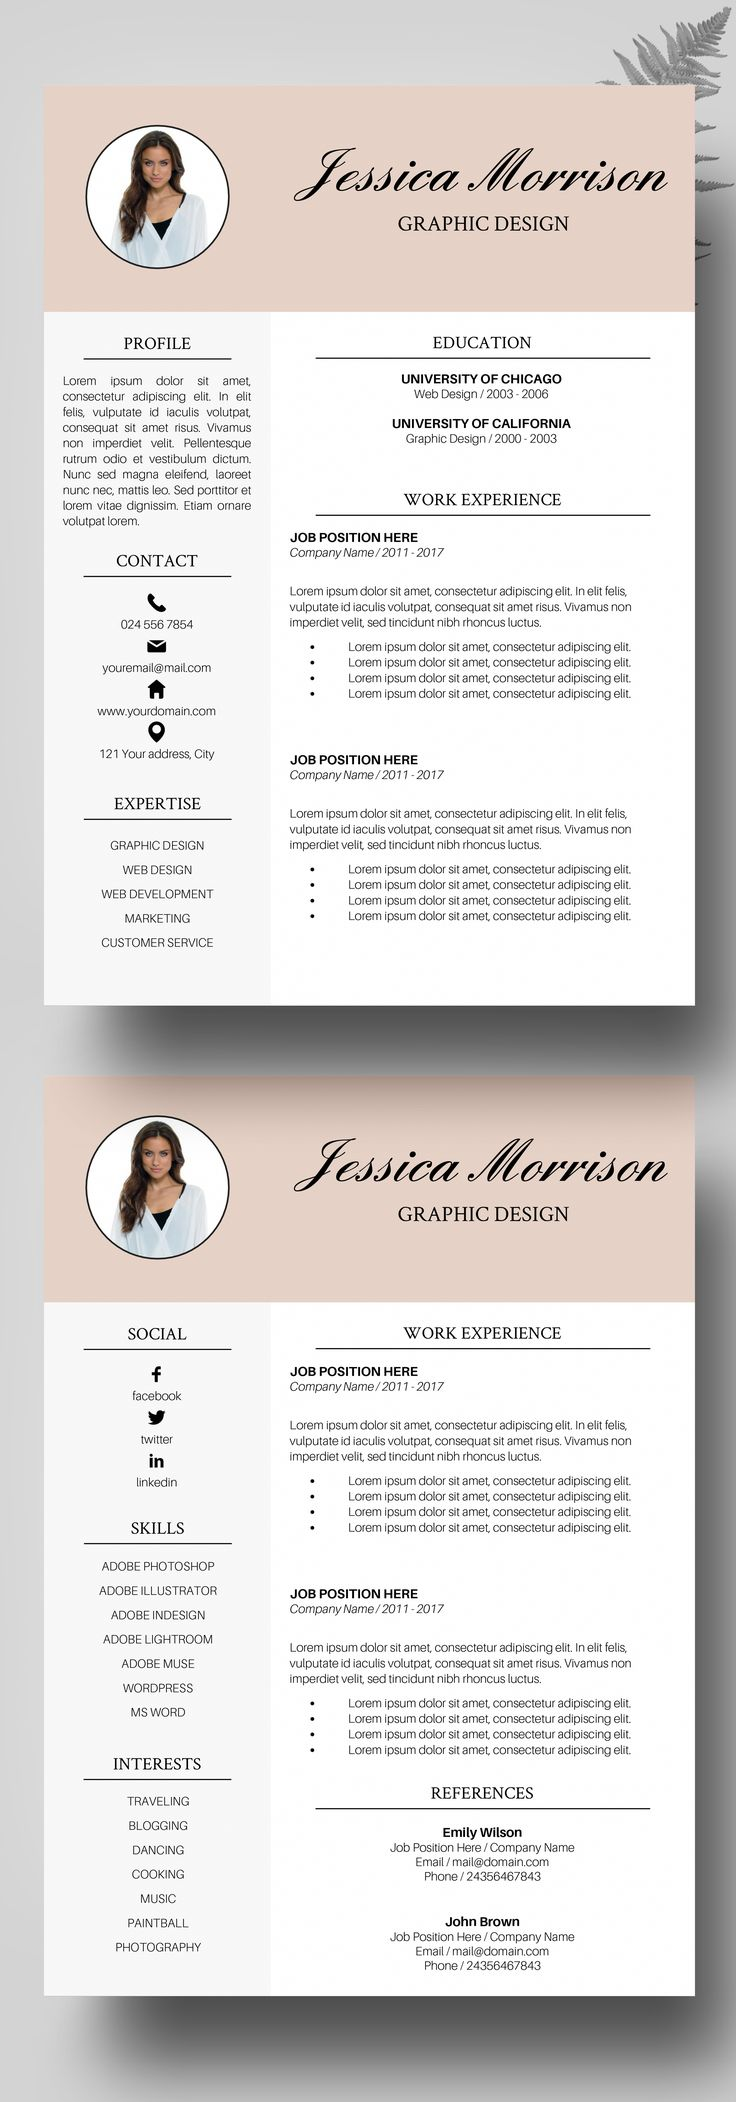 resume template cv template for ms word professional resume modern design creative resume teacher resume instant download